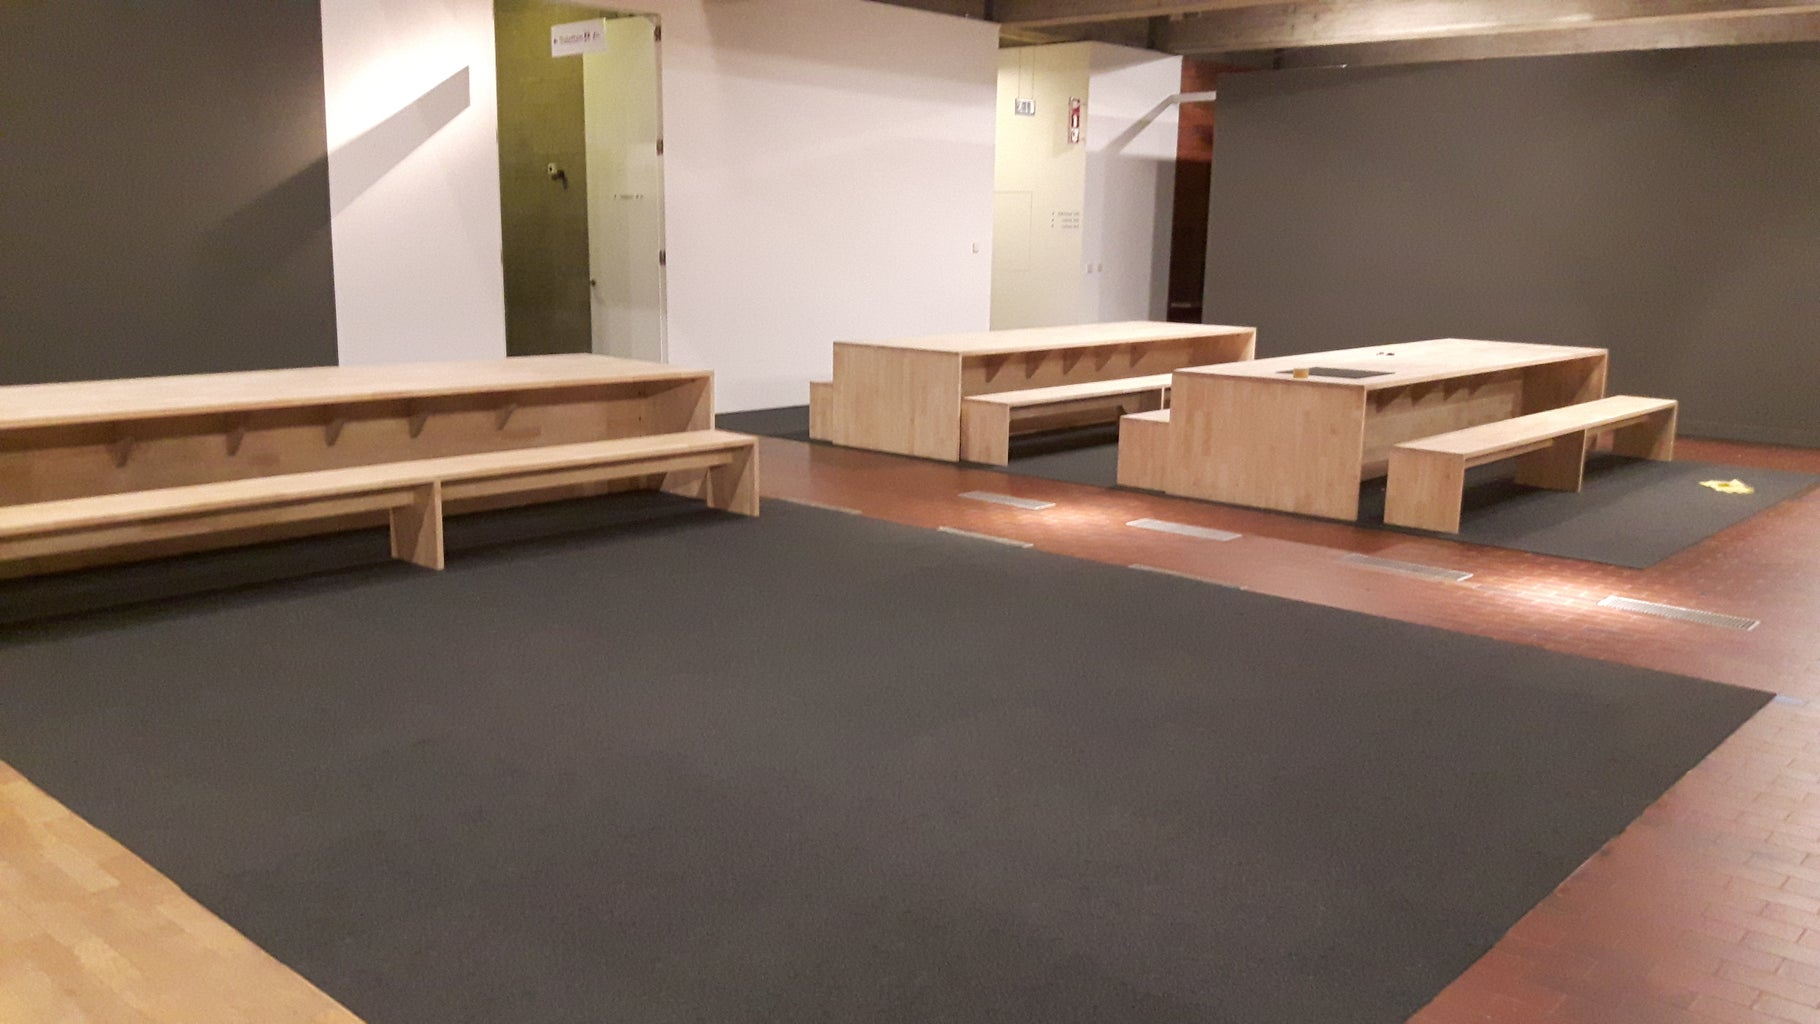 Reassembling the Tables and Benches